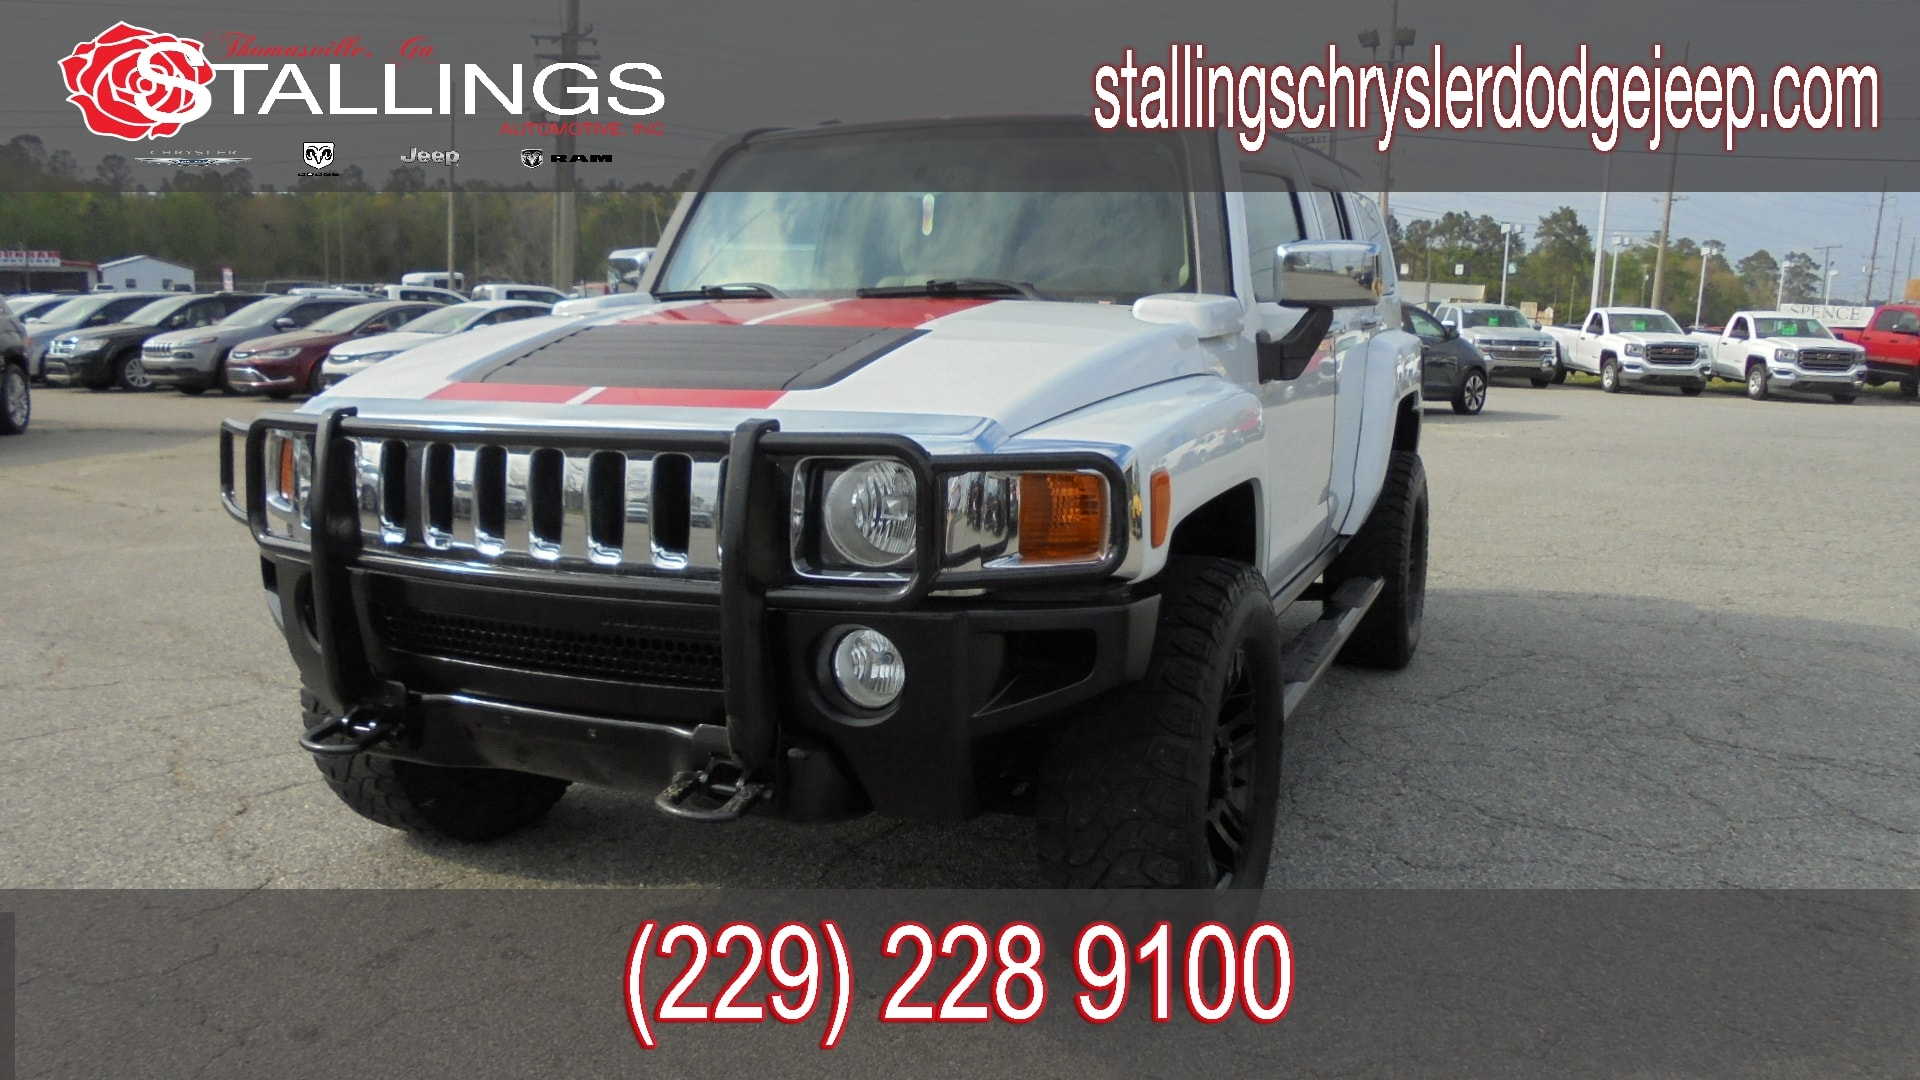 50 Best 2007 HUMMER H3 for Sale Savings from $2 569